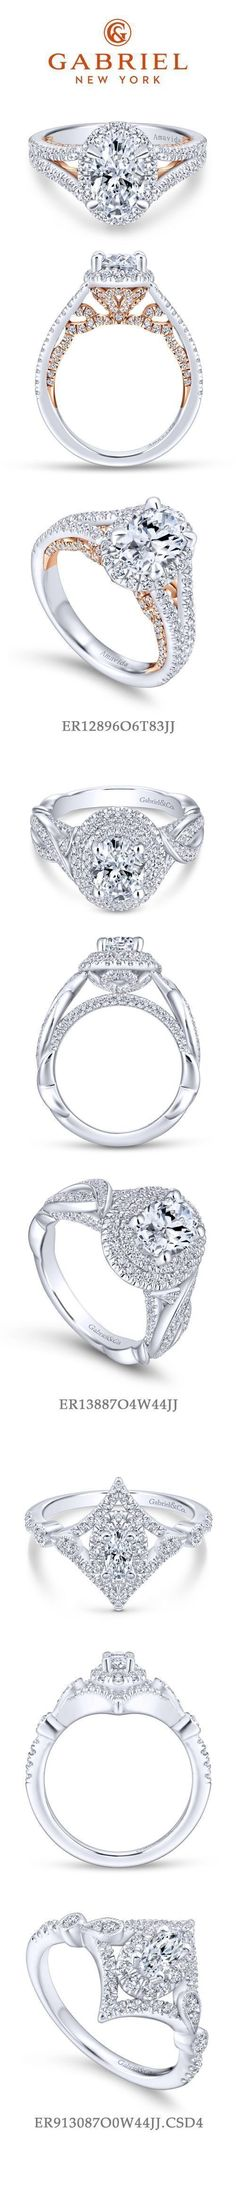 Gabriel NY - Preferred Fine Jewelry and Bridal Brand. Top 3 Oval Engagement Rings. 1) 18k White Gold Rose Gold Oval Halo Engagement Ring 2) 14k White Gold Double Halo Engagement Ring 3) Vintage 14k White Gold Halo Wedding Ring #fineweddingrings #ovalweddingrings